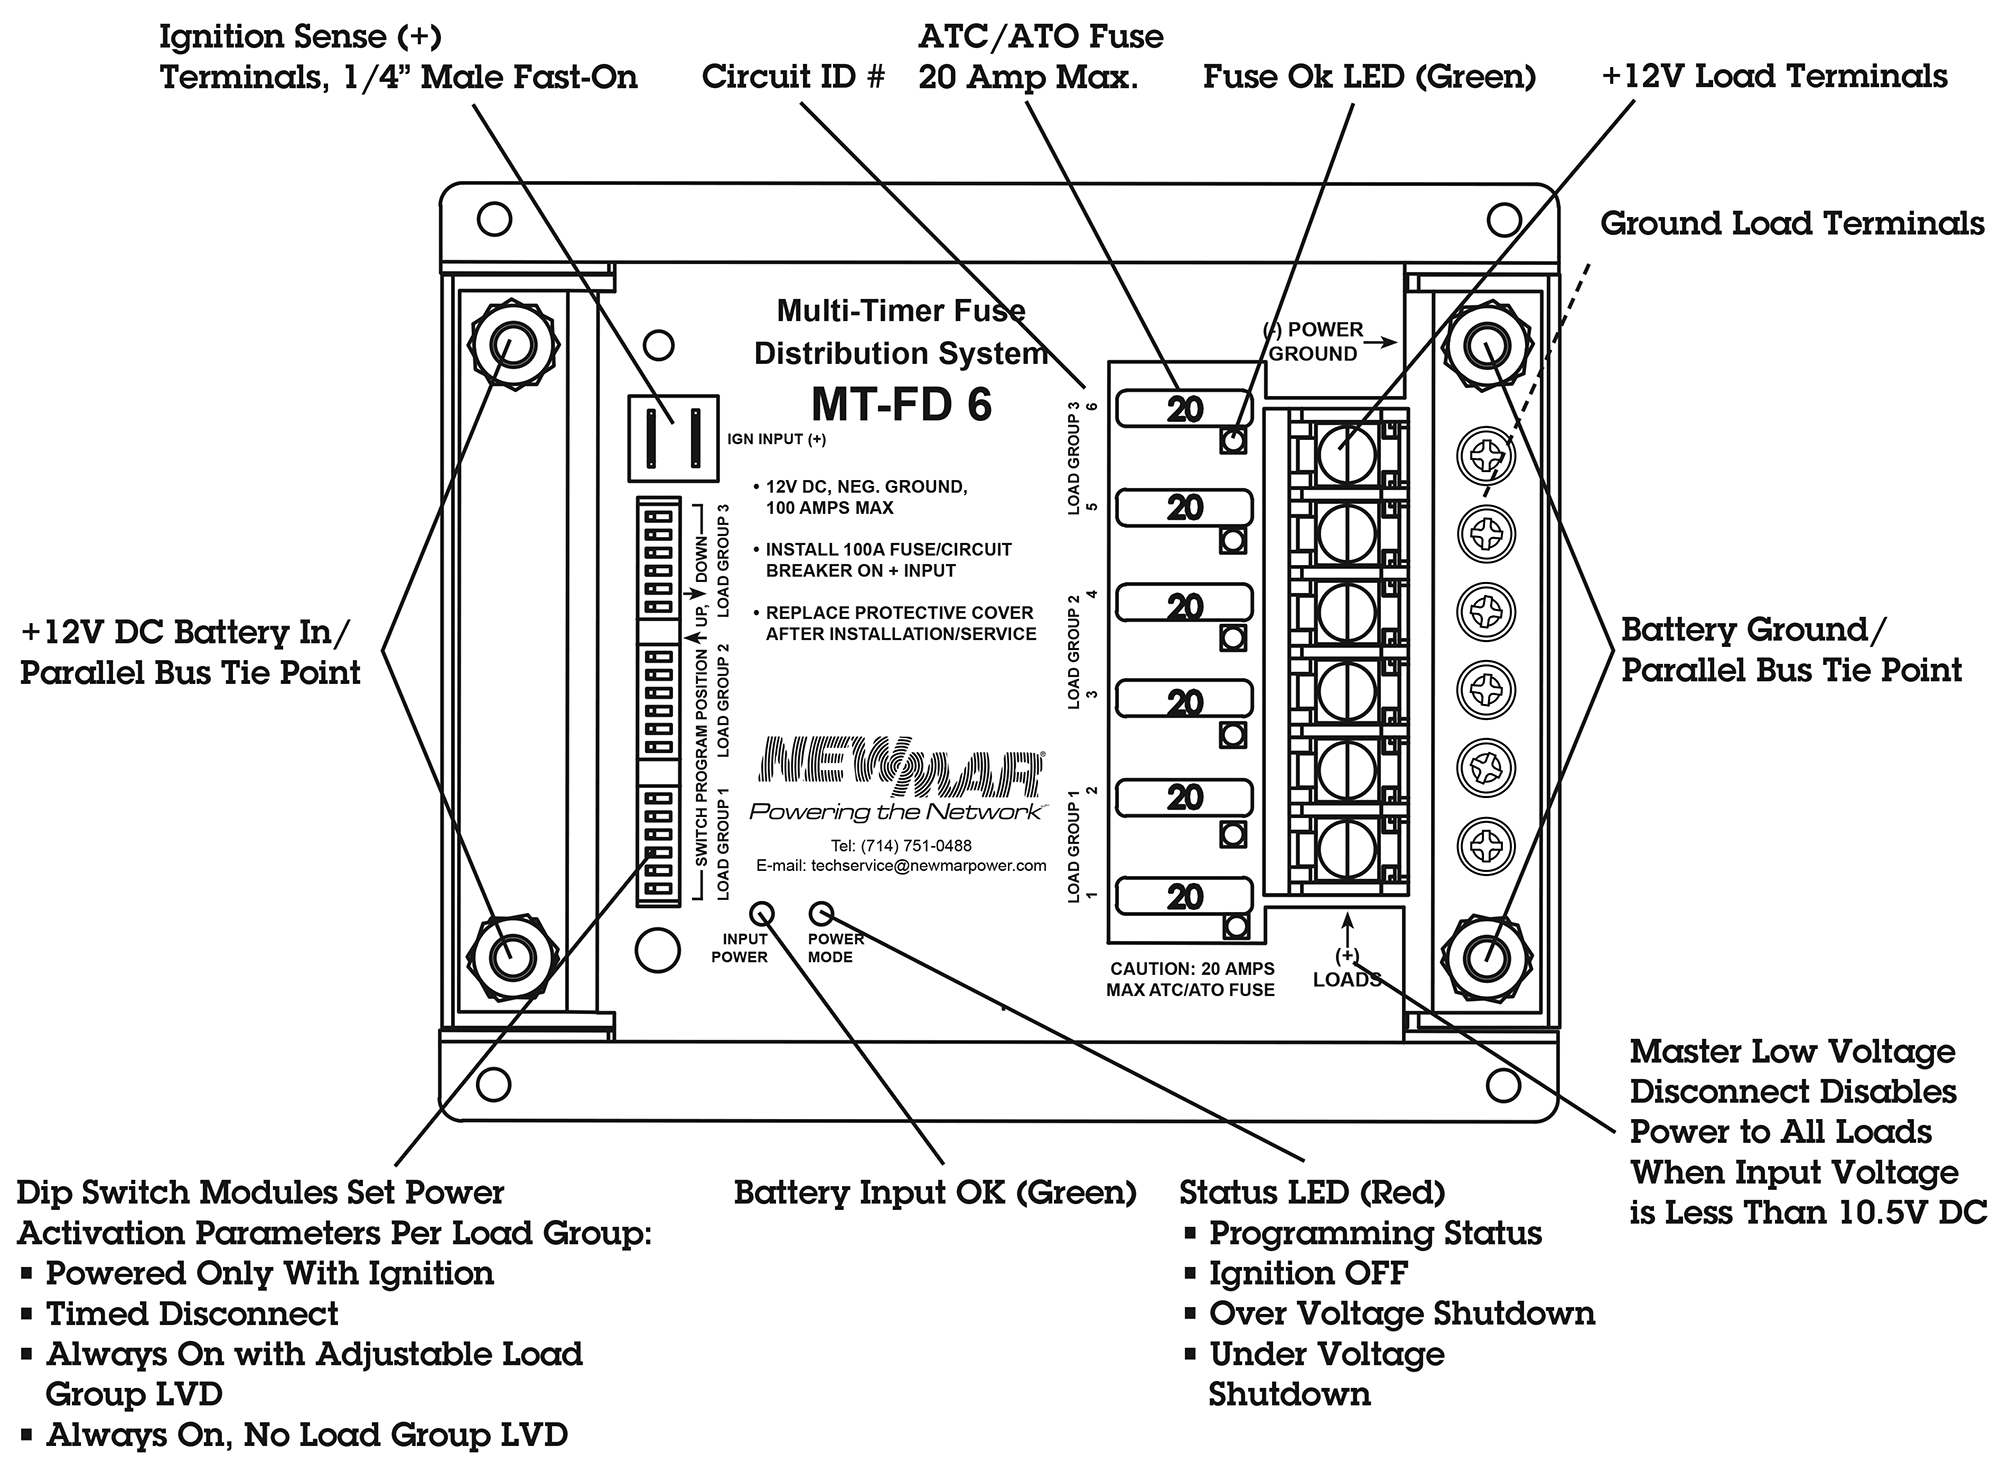 MD FD_Diagram_1 centurion 3000 wiring diagram efcaviation com centurion 3000 wiring diagram at bakdesigns.co